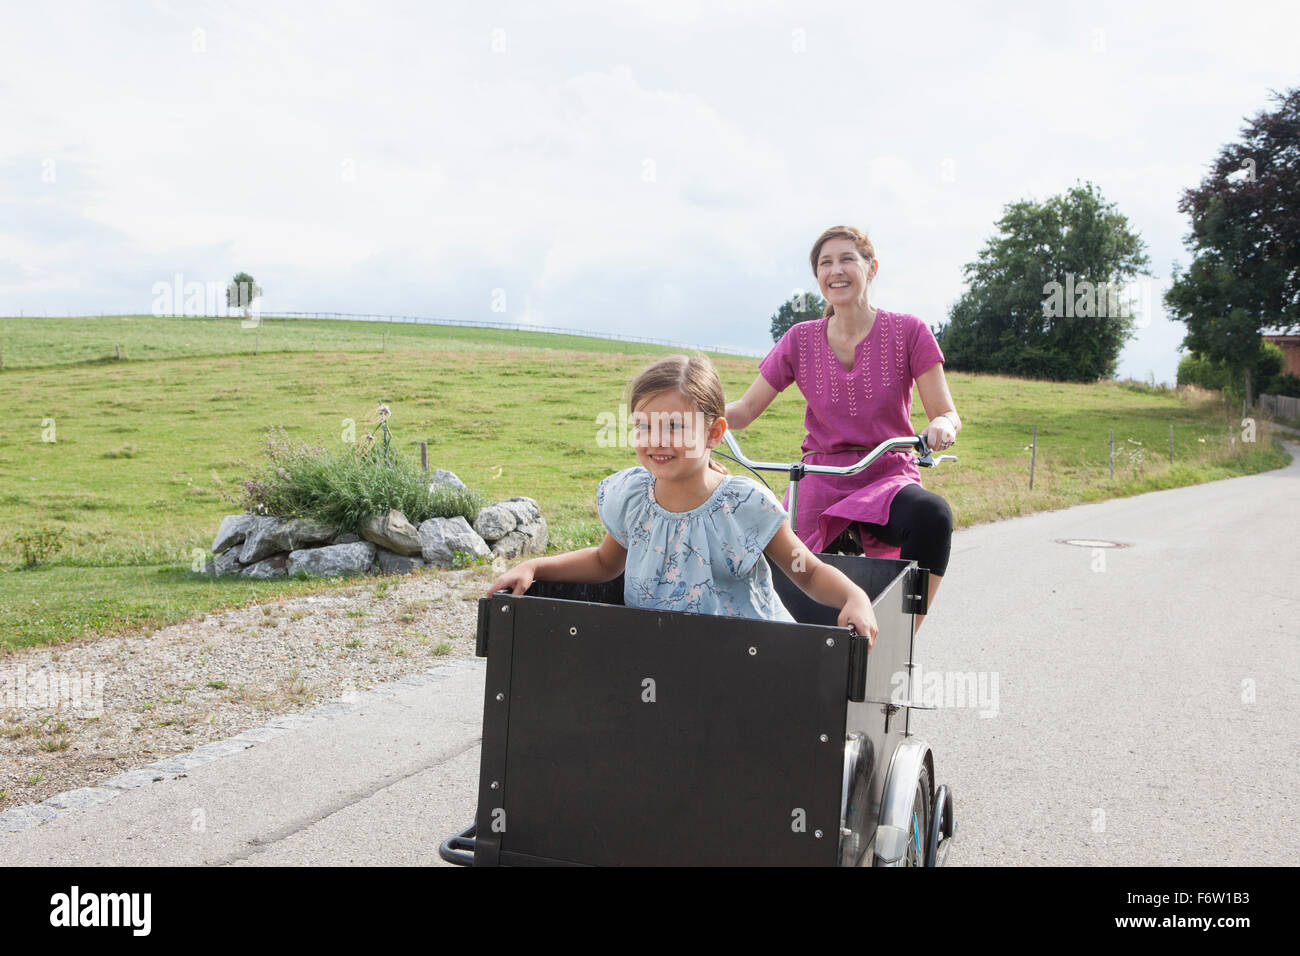 Mother riding bicycle with daughter in trailer - Stock Image